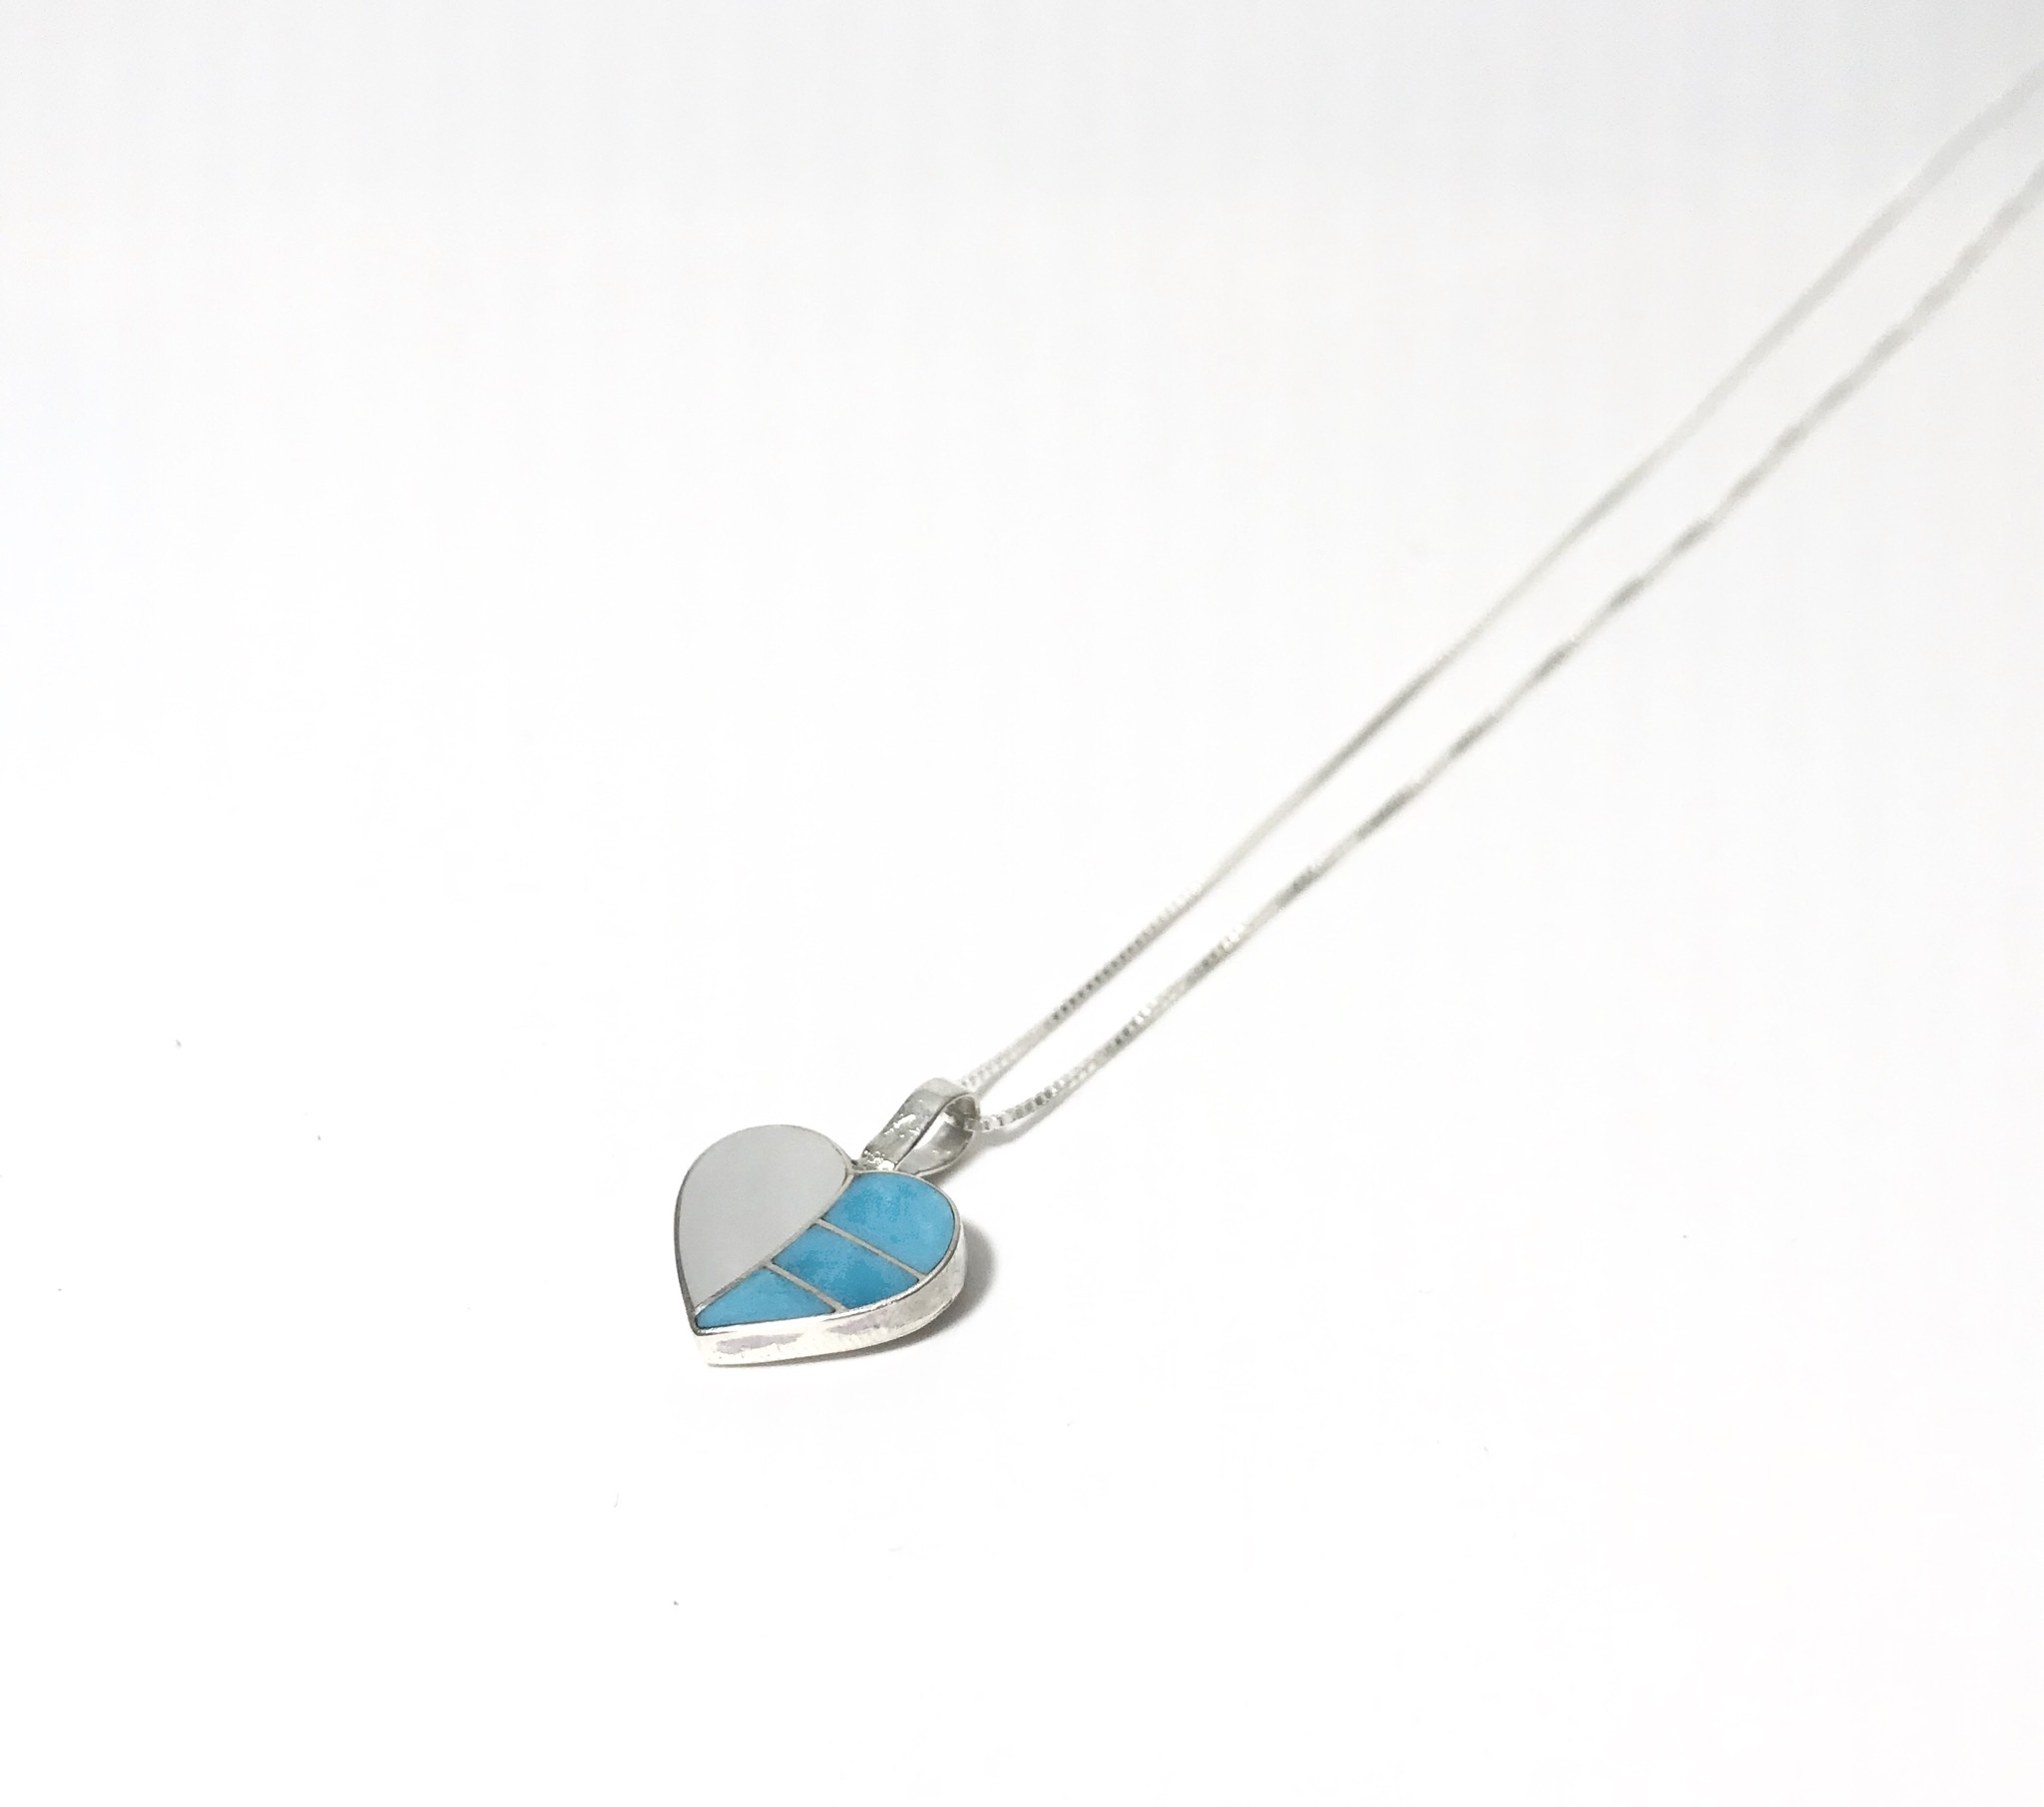 INDIAN JEWELRY  NAVAJO族 HEART NECKLESS TURQUOISE SHELL /ナバホ族 ハートネックレス インディアンジュエリー ターコイズ シェル